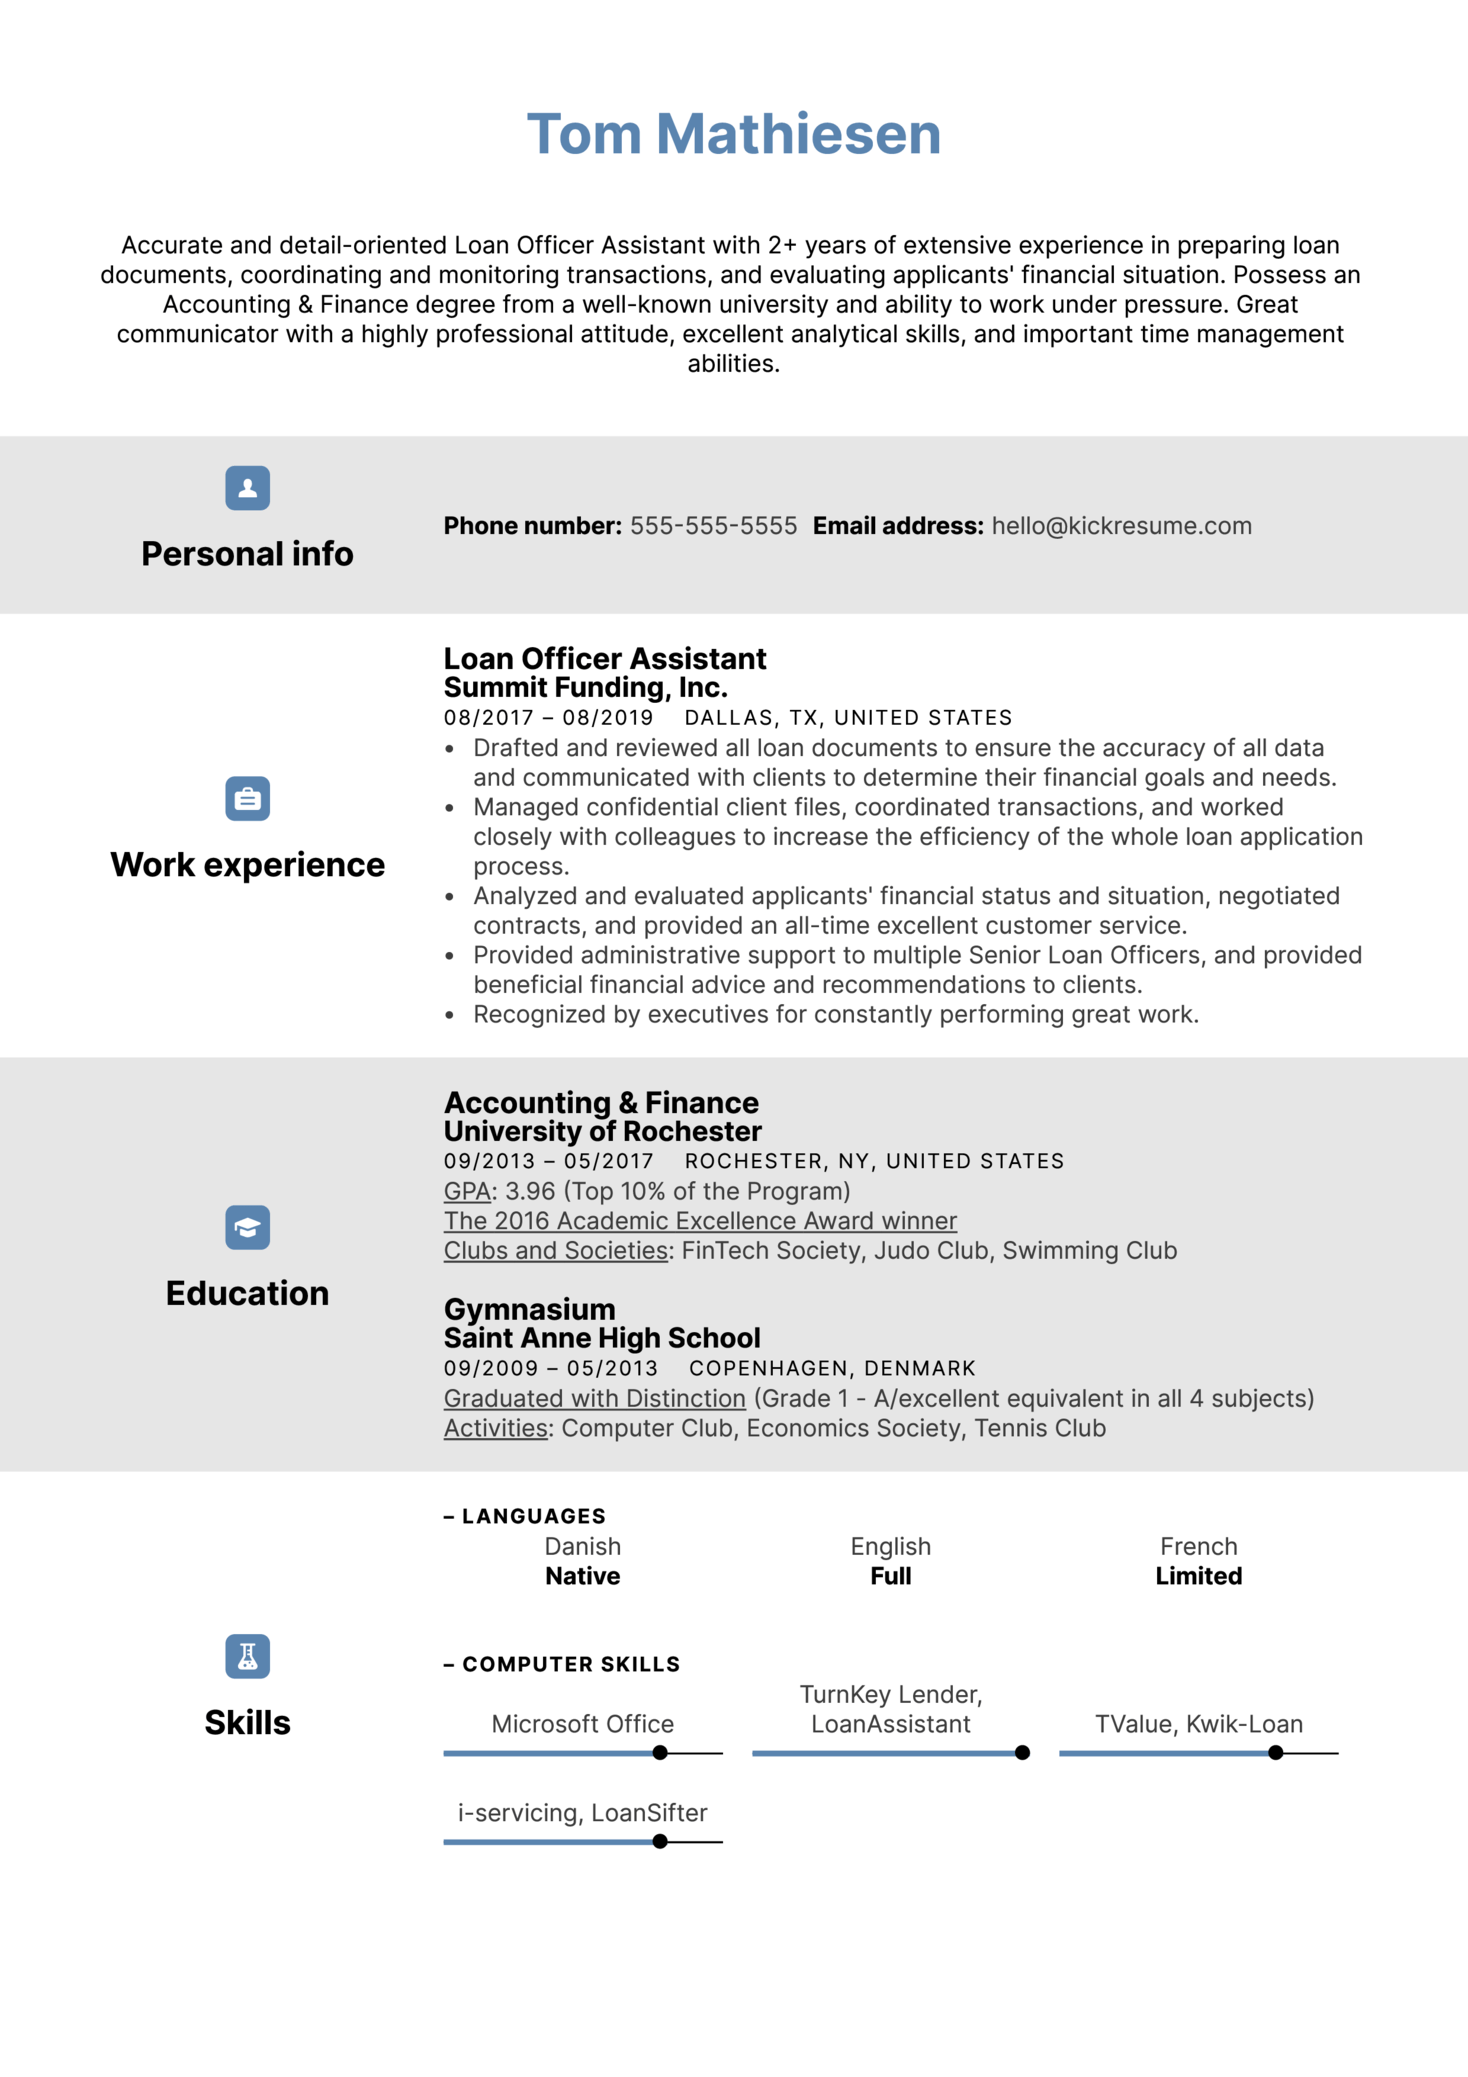 Loan Officer Assistant Resume Example (parte 1)